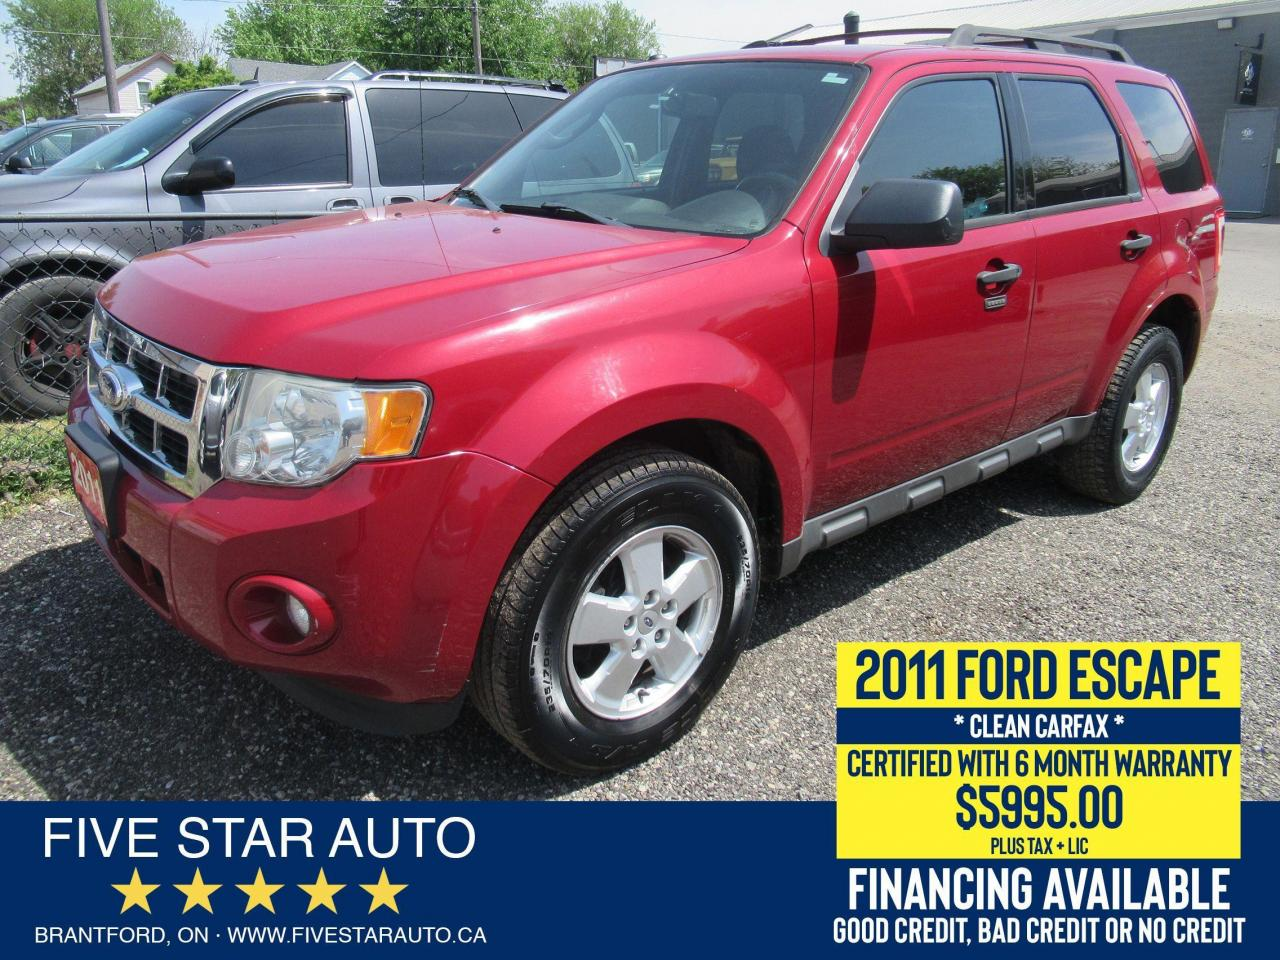 2011 Ford Escape XLT *Clean Carfax* Certified w/ 6 Month Warranty